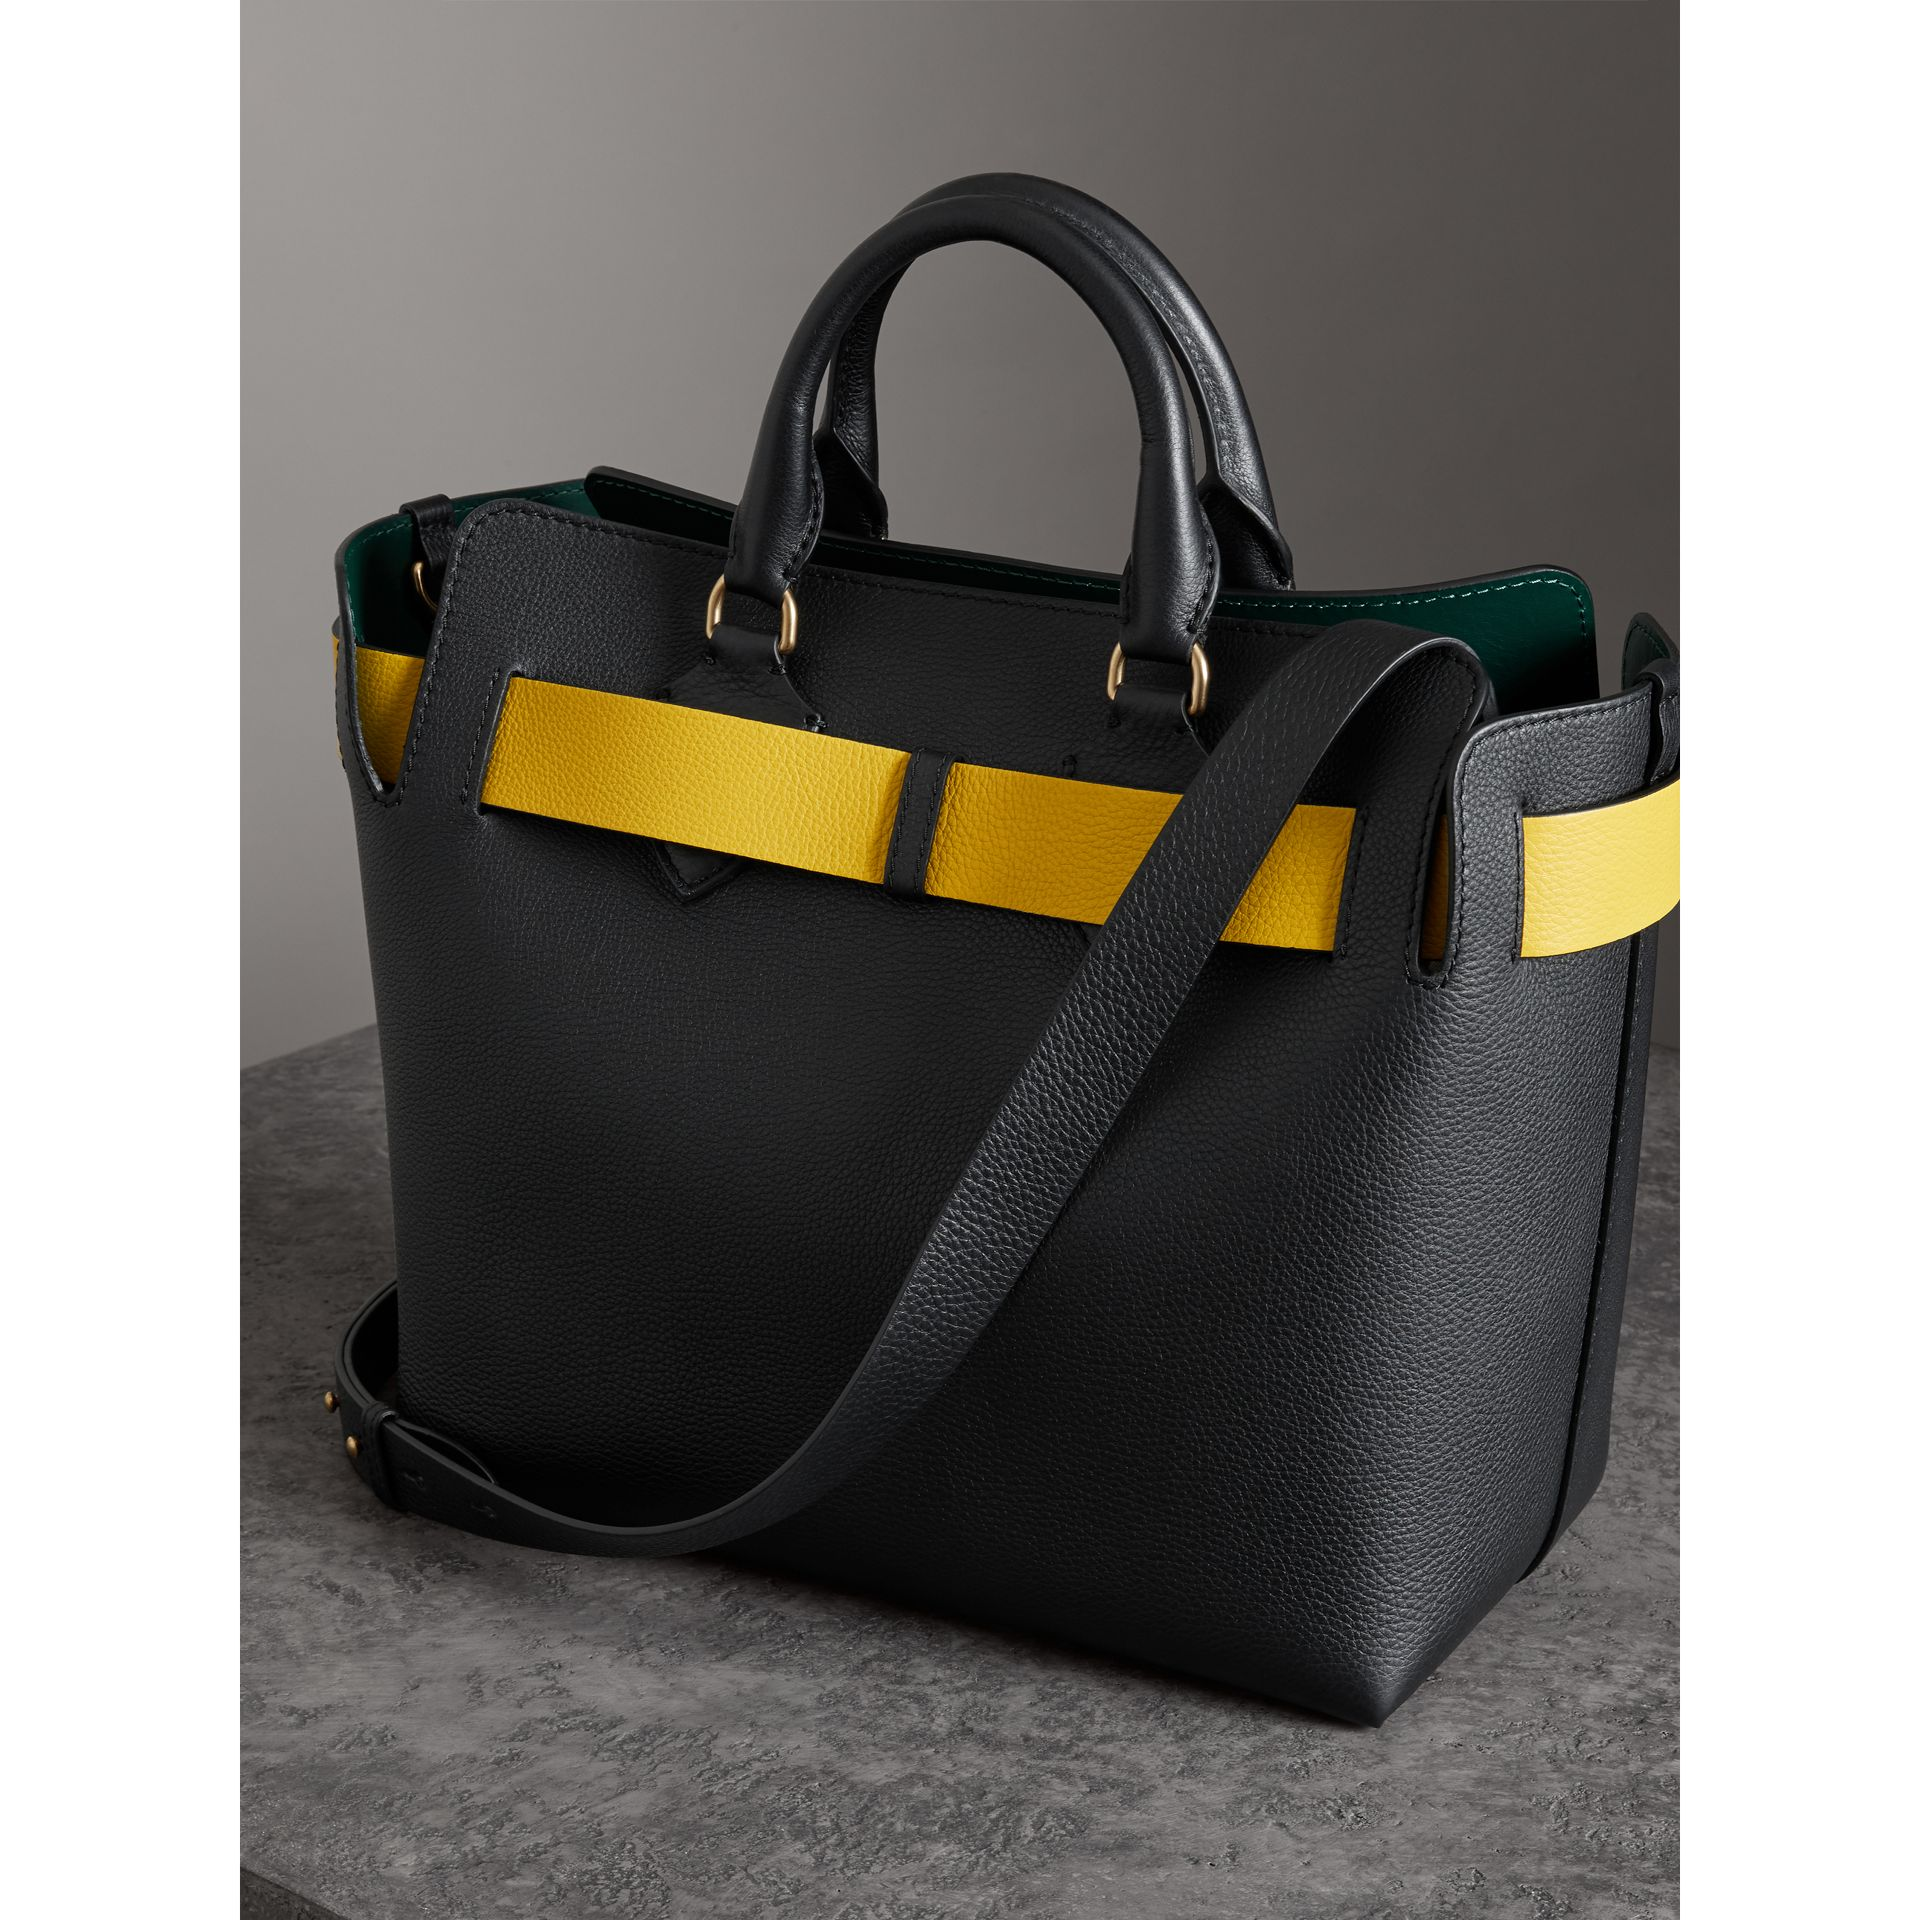 Sac The Belt moyen en cuir (Noir) - Femme | Burberry - photo de la galerie 3